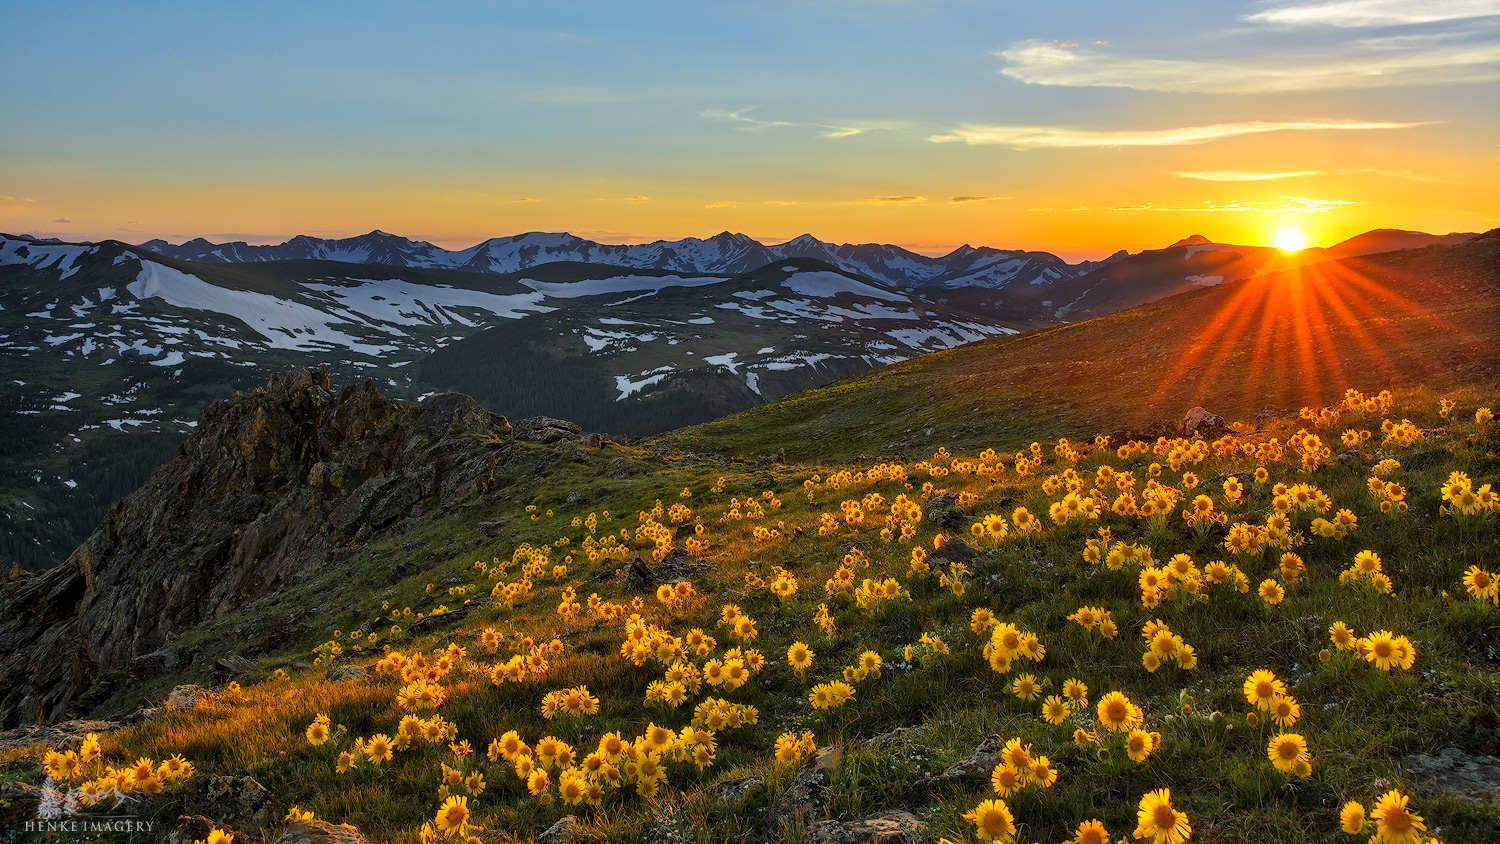 A prolific bloom of the Old Man of the Mountain sunflower is a sight to behold. This scene from Rocky Mountain National Park...